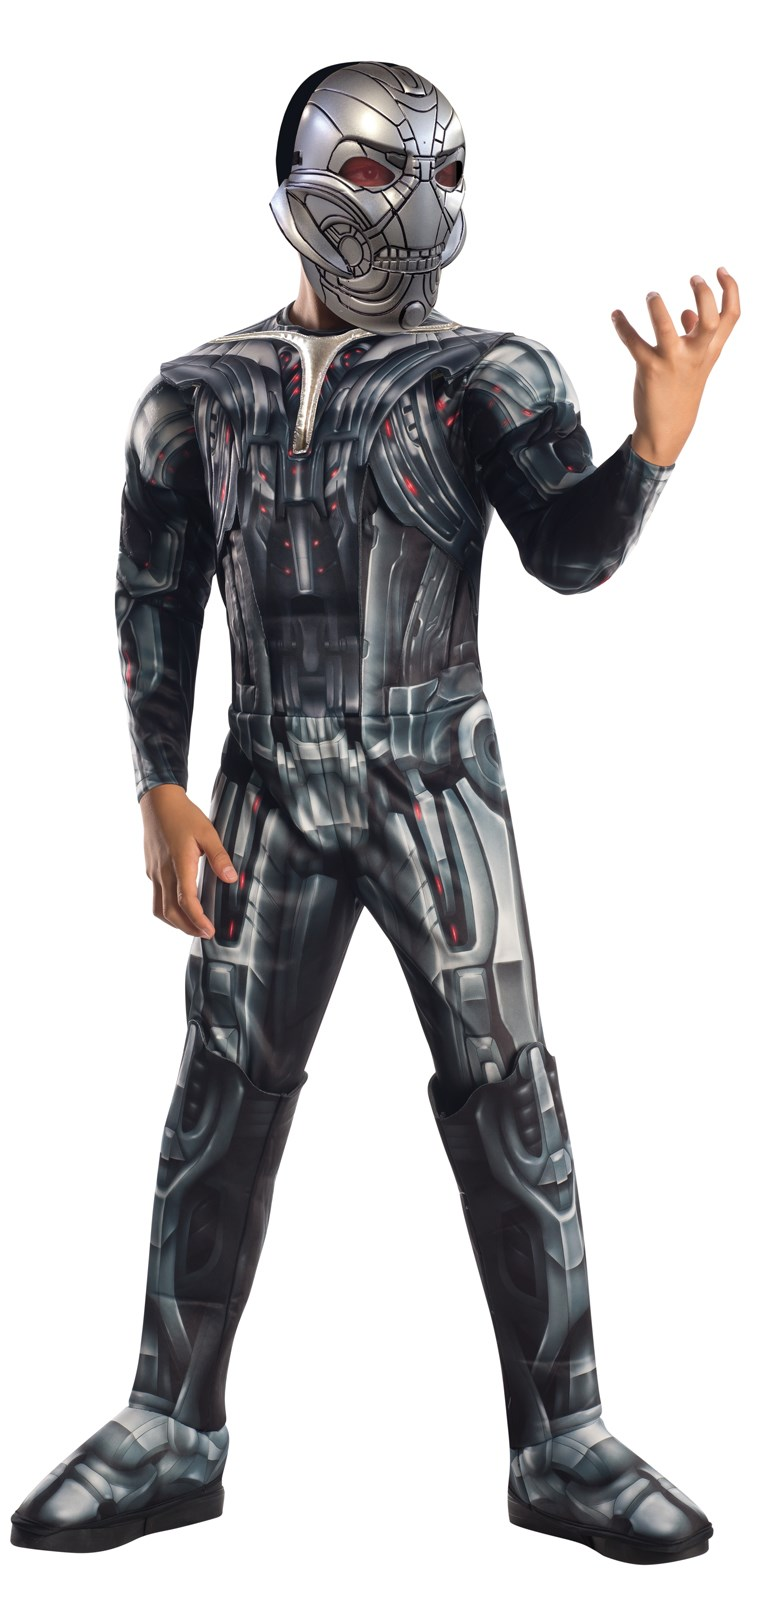 Avengers 2 - Age of Ultron: Deluxe Ultron Costume For Kids Medium (8-10)